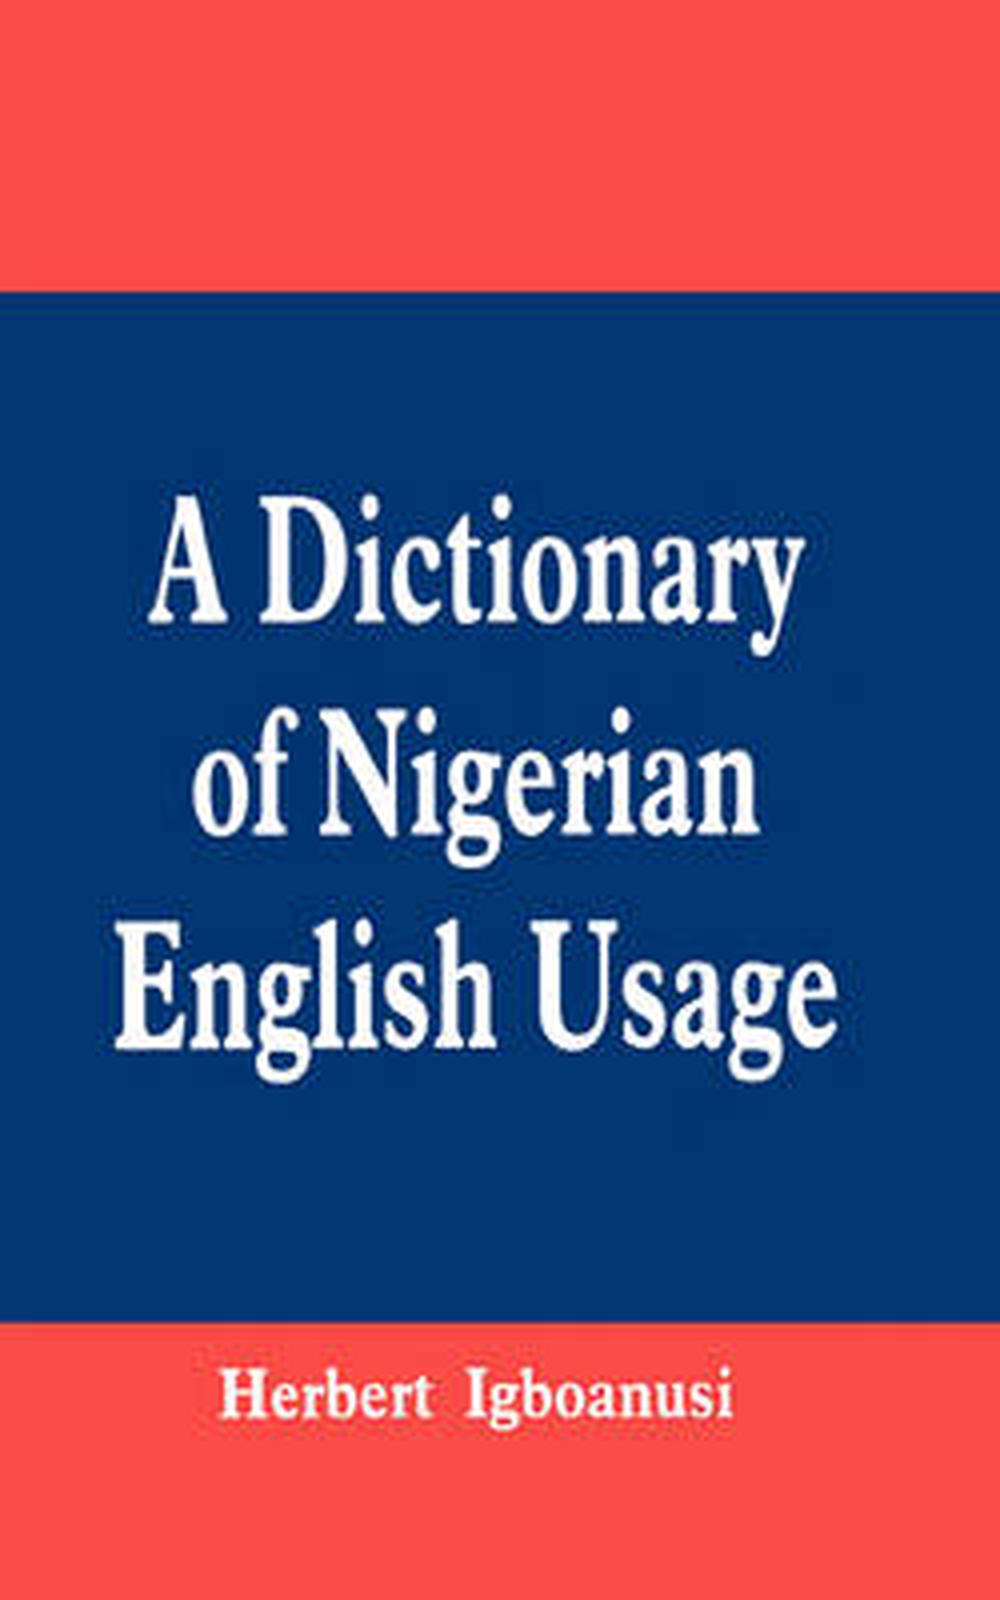 Details about A Dictionary of Nigerian English Usage by Herbert Igboanusi ( English) Paperback